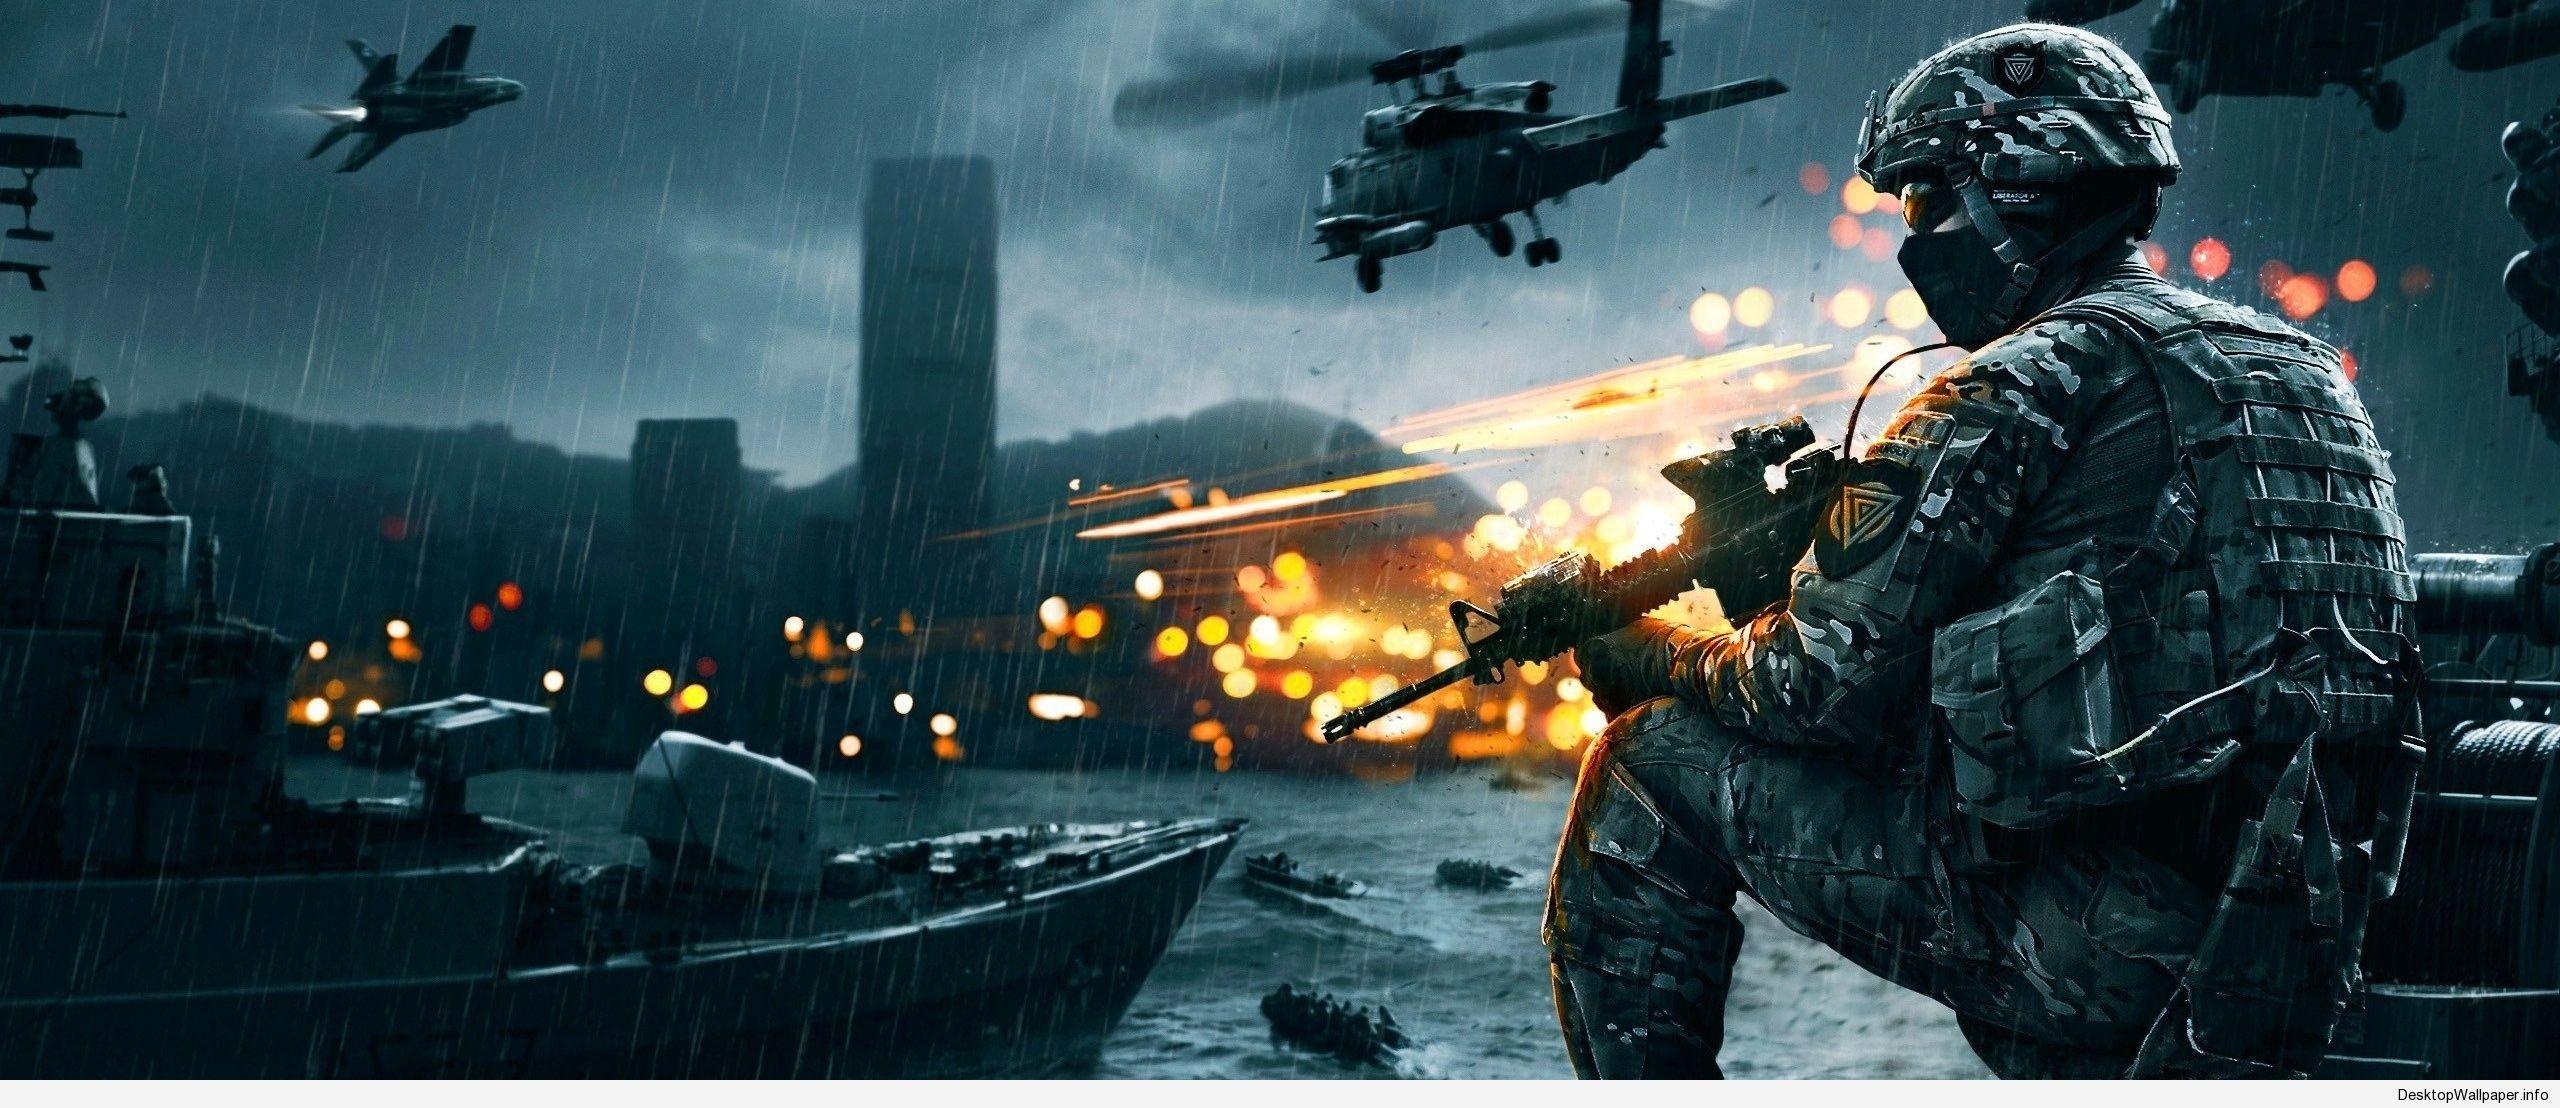 Gaming Wallpaper 75 Hd Wallpapers On Wallpaperplay Battlefield 4 2560x1108 Download Hd Wallpaper Wallpapertip